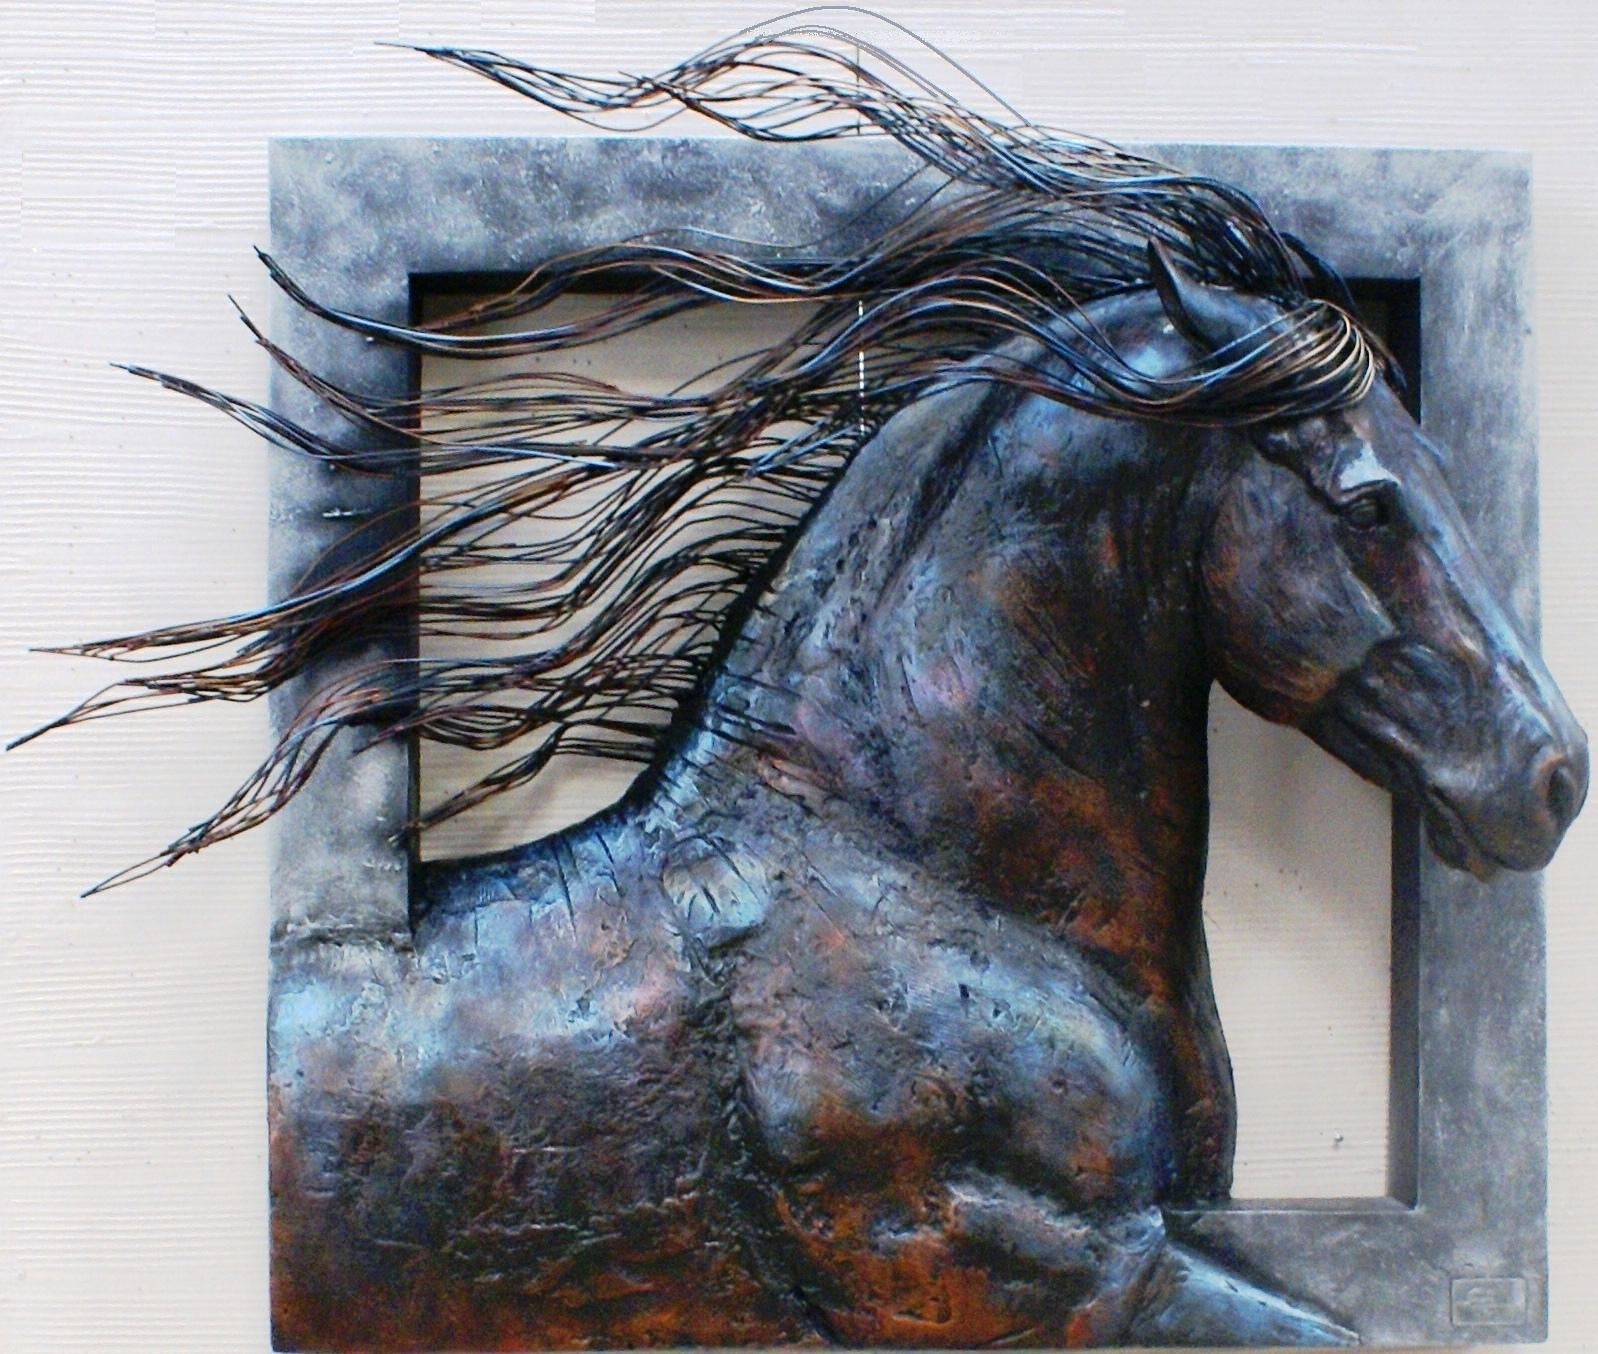 Wall Art Designs Awesome 10 Metal Wall Art Sculpture, 3D Metal Wall Throughout 3D Metal Wall Art (View 19 of 20)